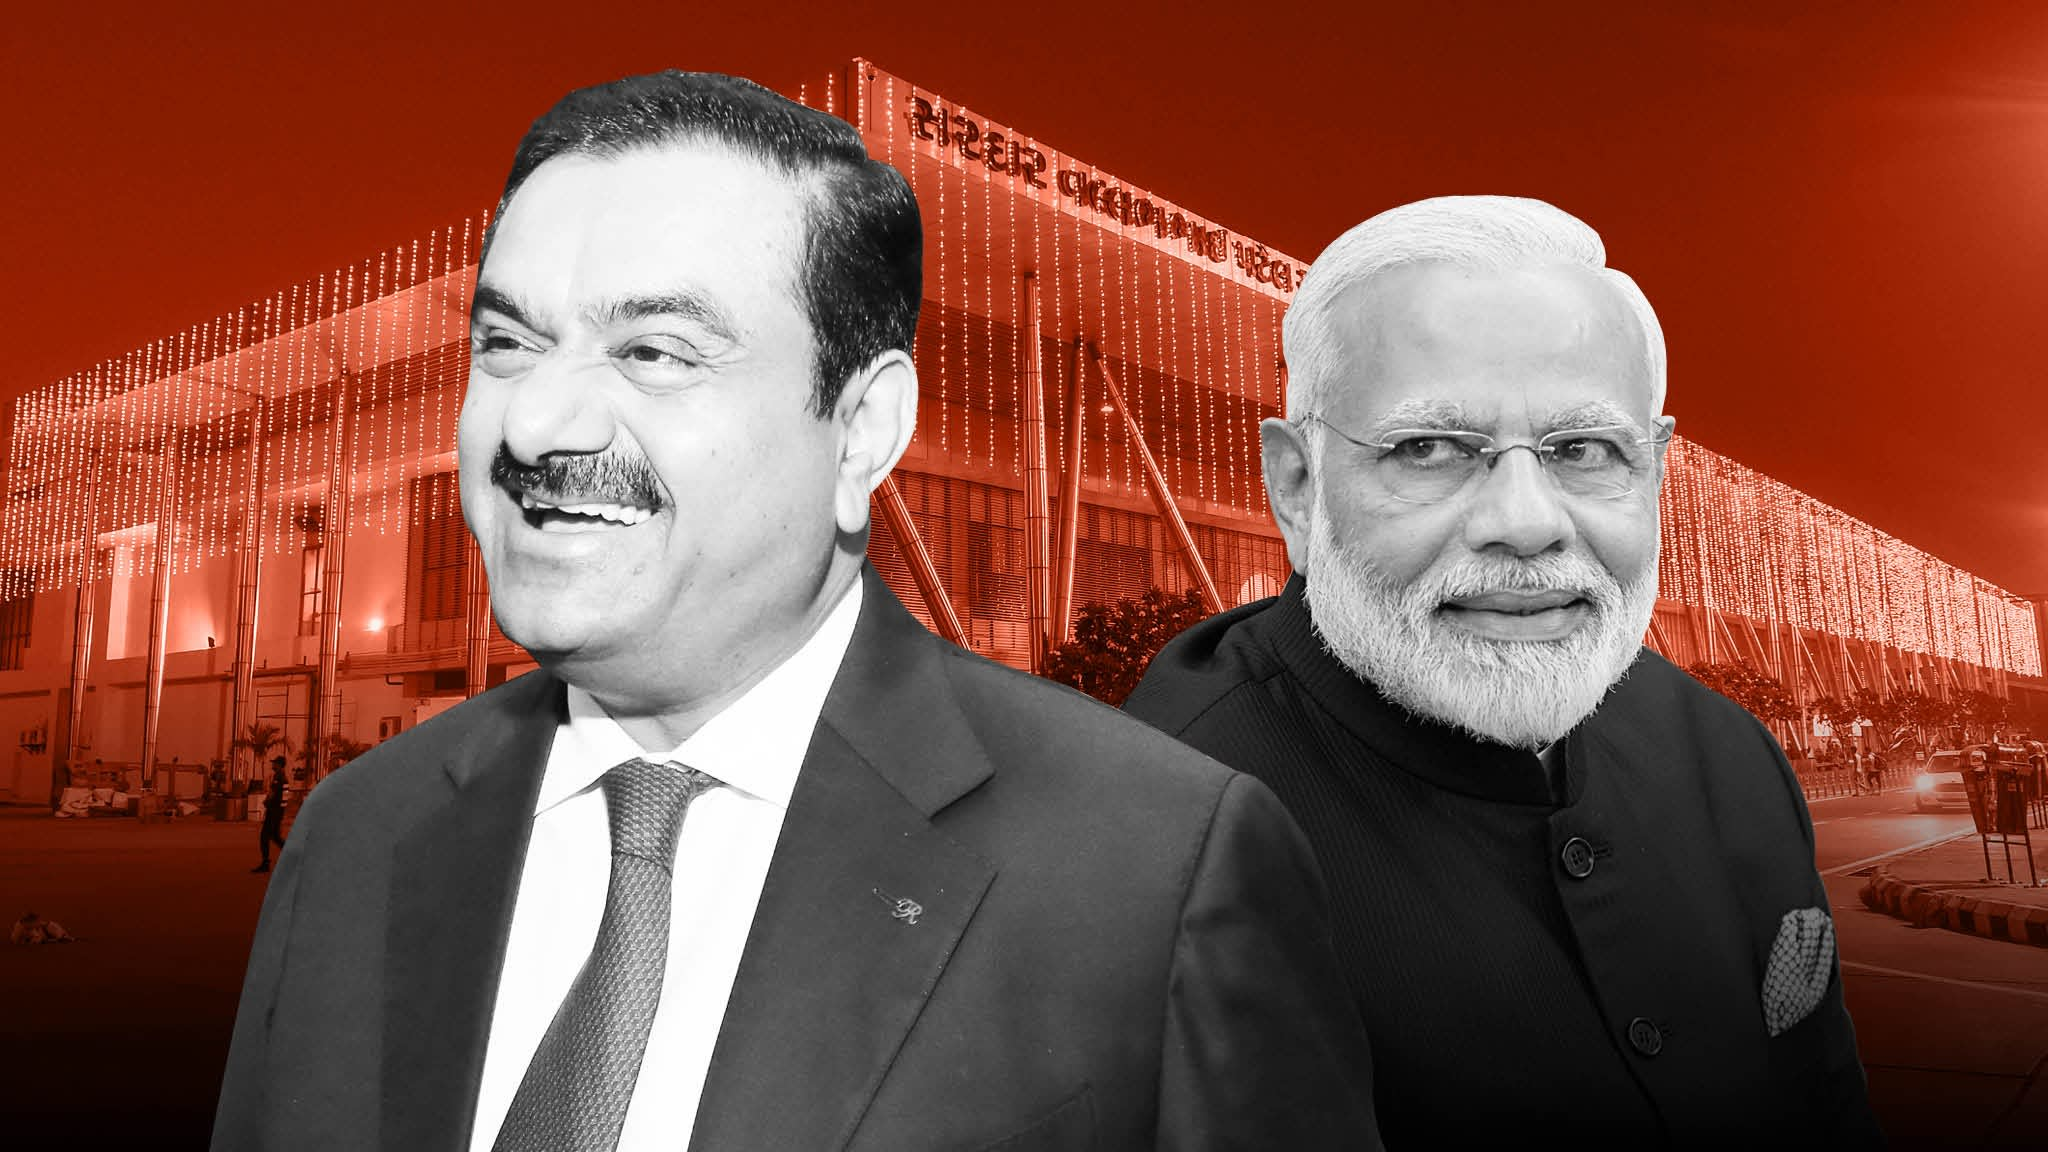 Modi S Rockefeller Gautam Adani And The Concentration Of Power In India Financial Times